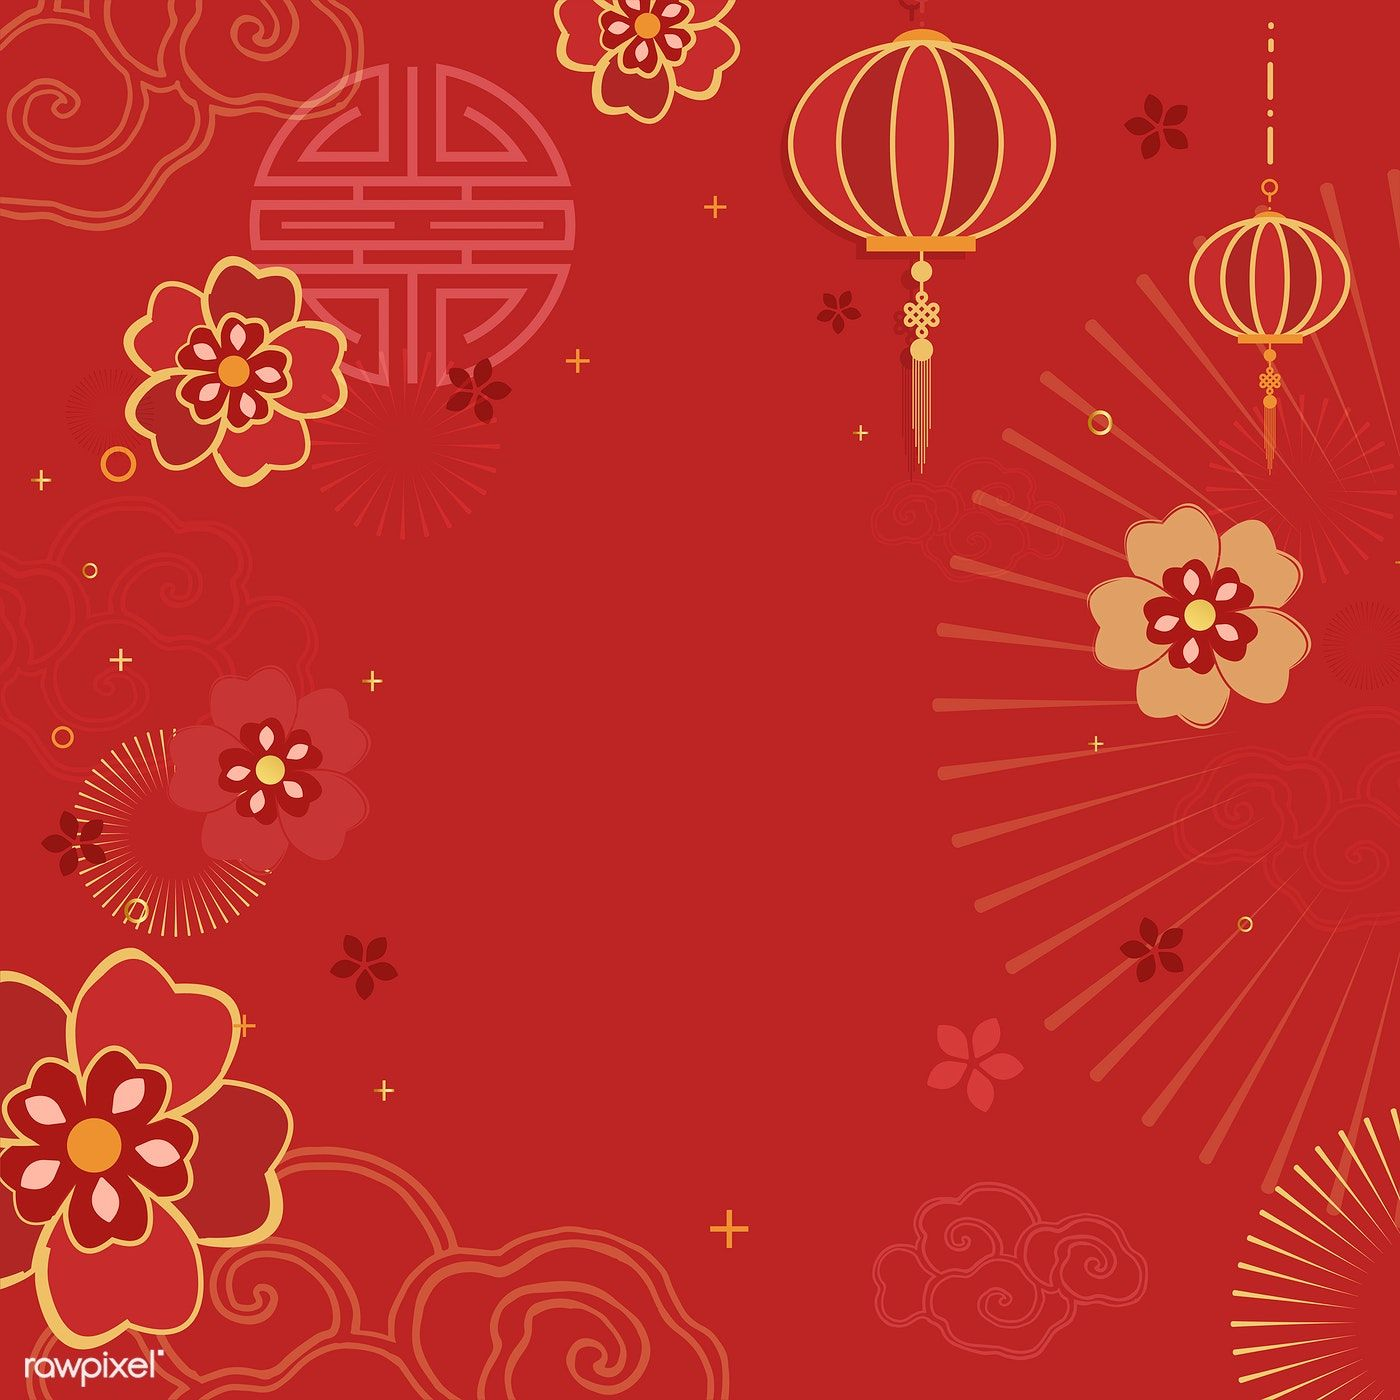 Download Premium Vector Of Chinese New Year 2019 Greeting Background 555257 Chinese New Year Background Chinese New Year Design New Year Background Images